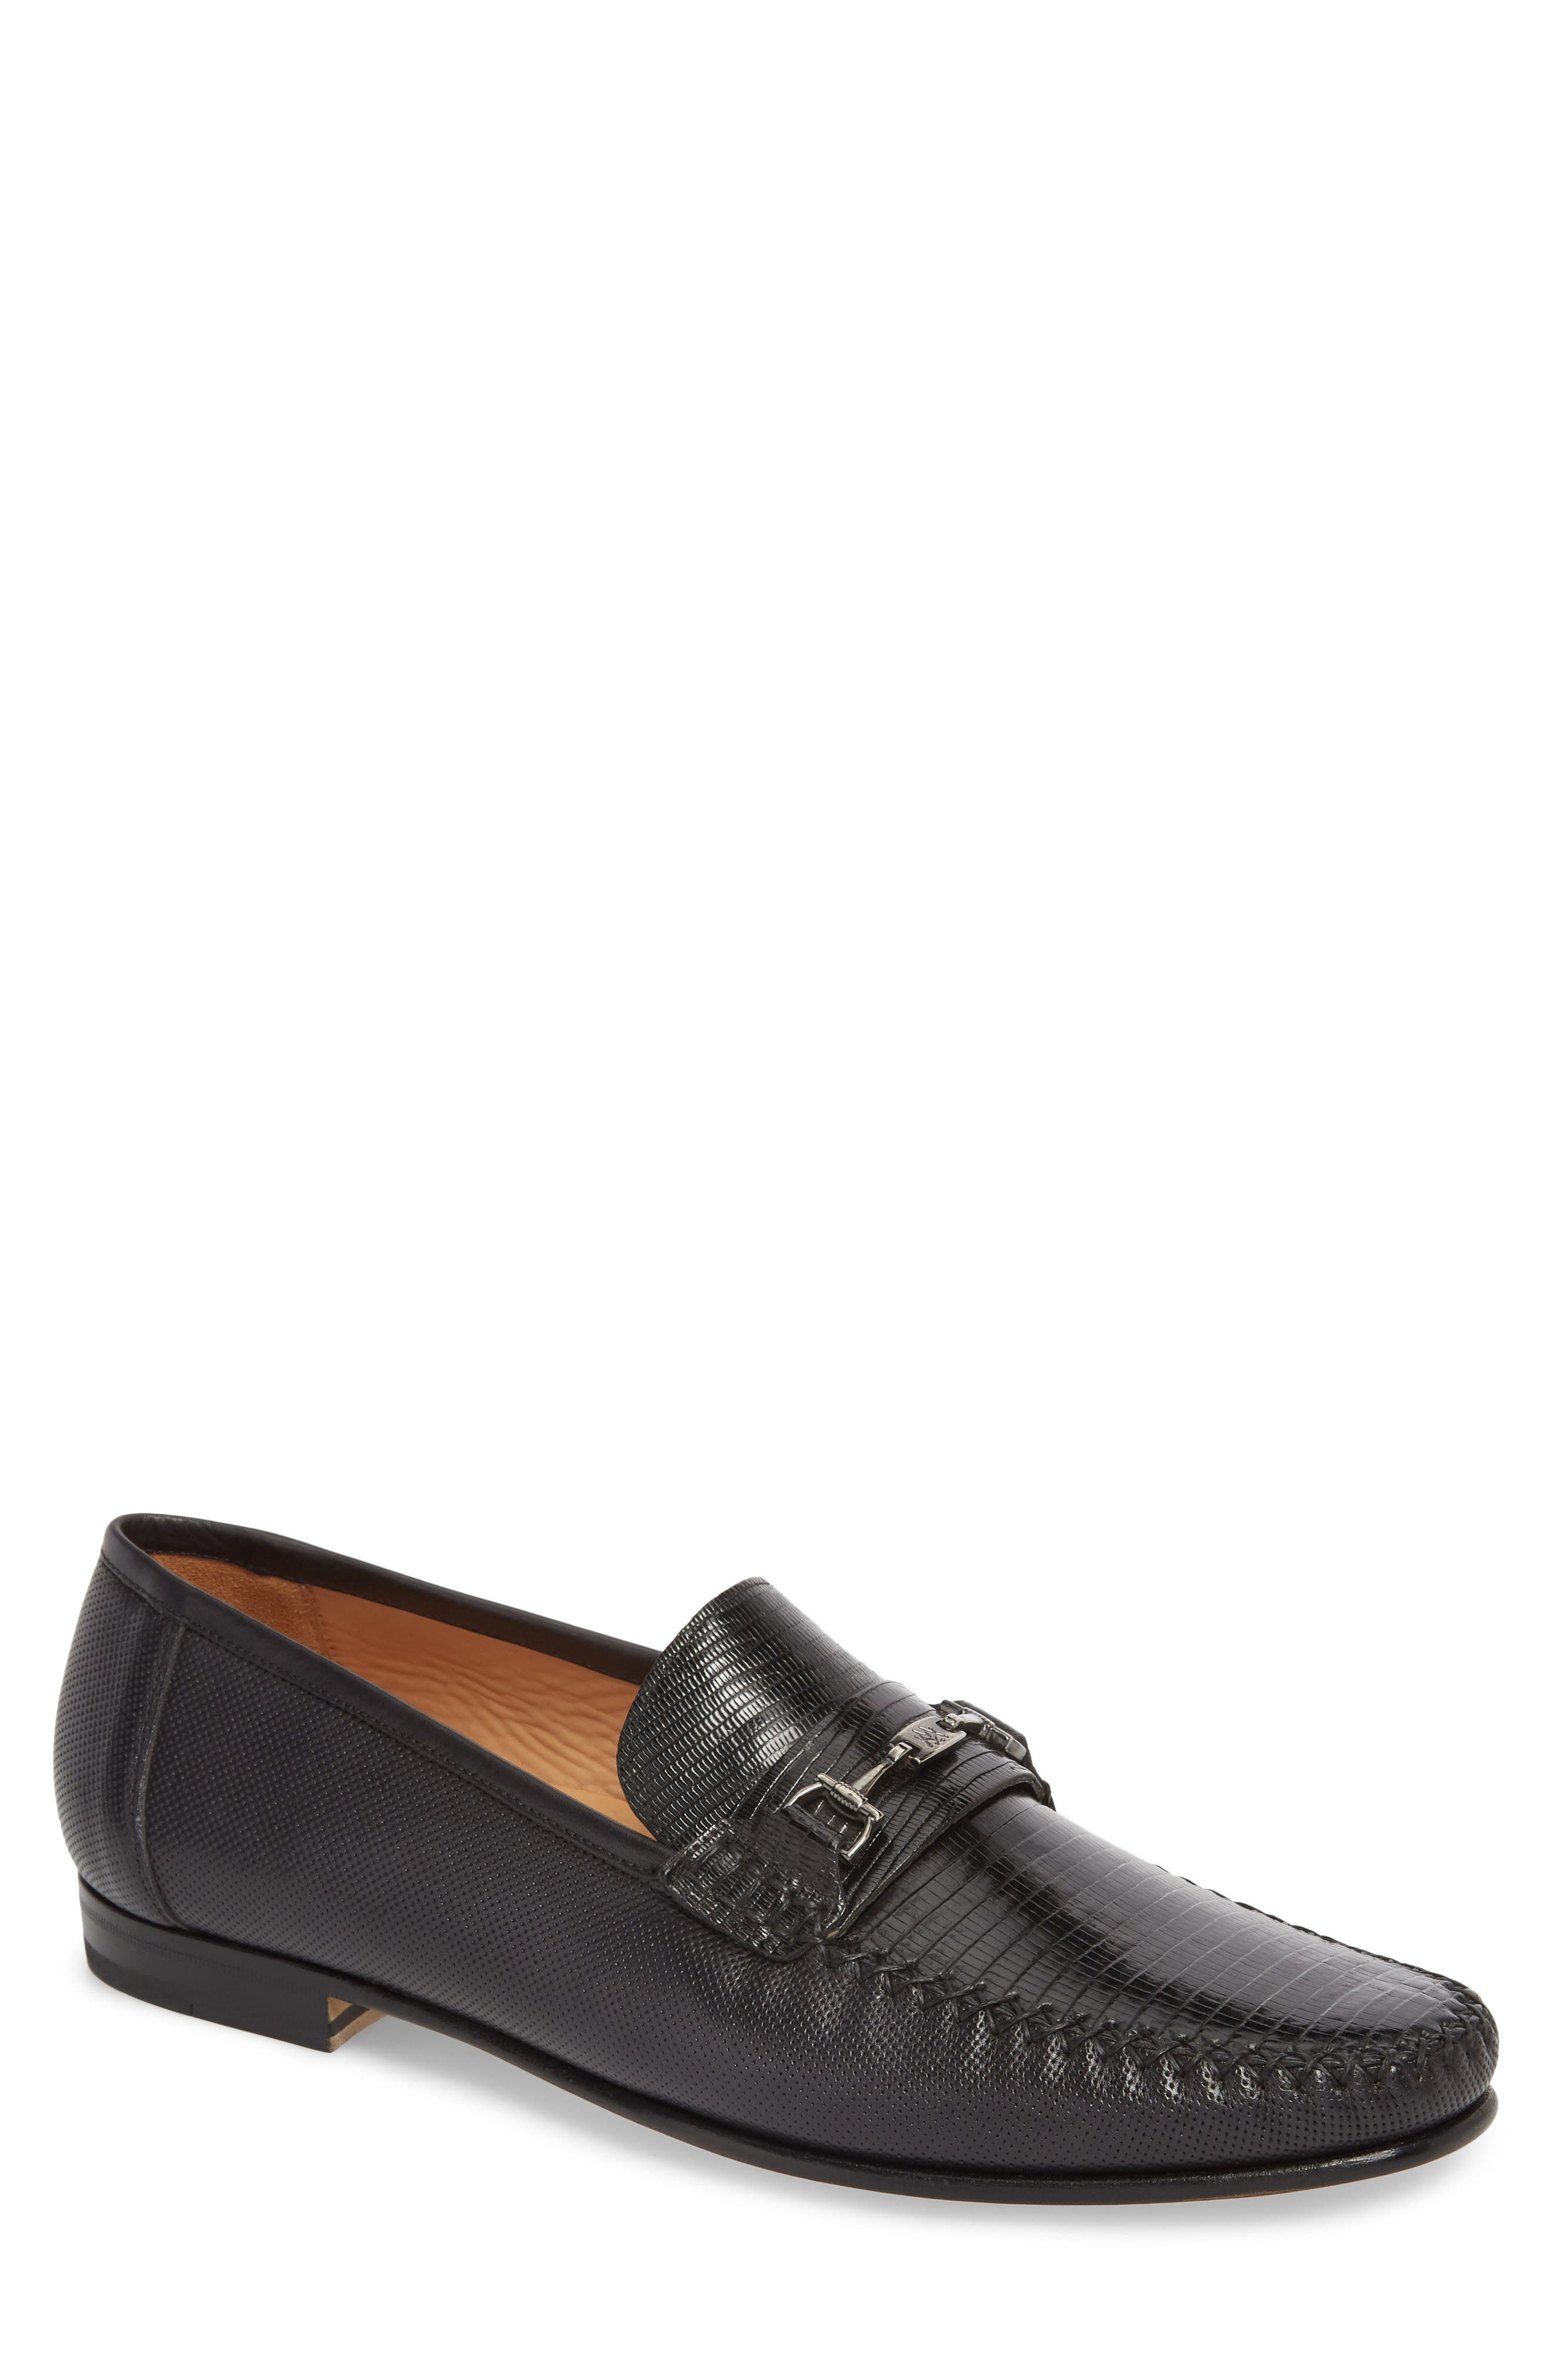 Sileno Lizard Loafer,                             Main thumbnail 1, color,                             BLACK LEATHER